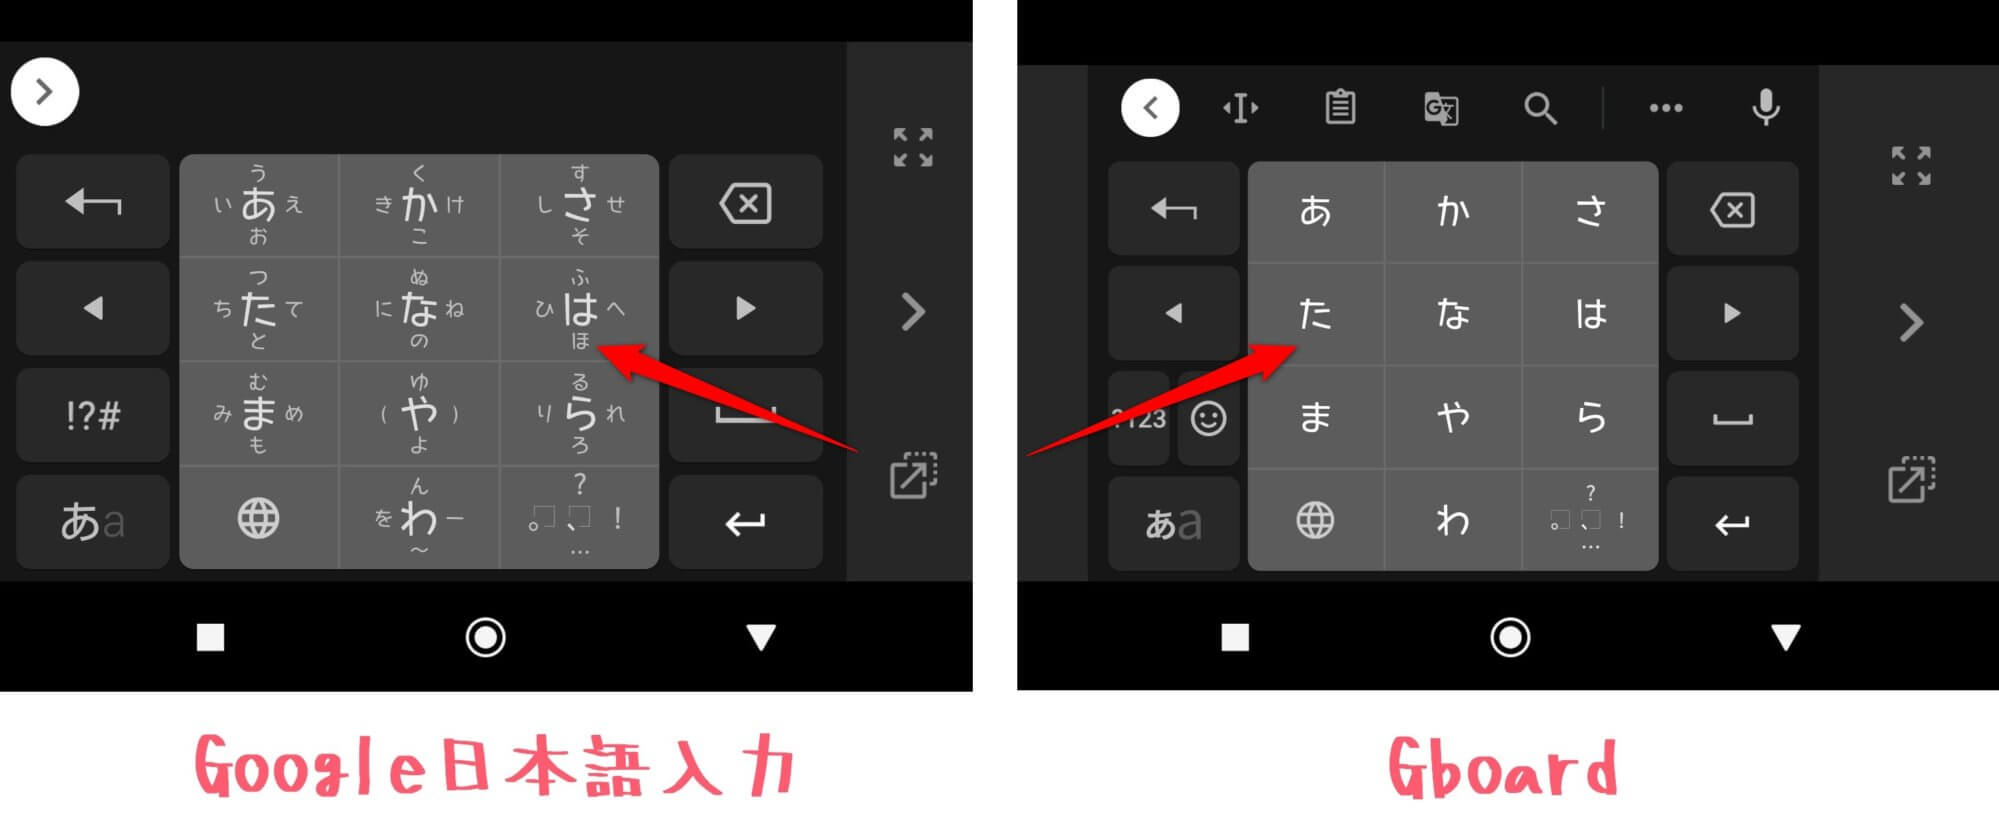 Google-japanese-ime-and-gboard-flick-char-display